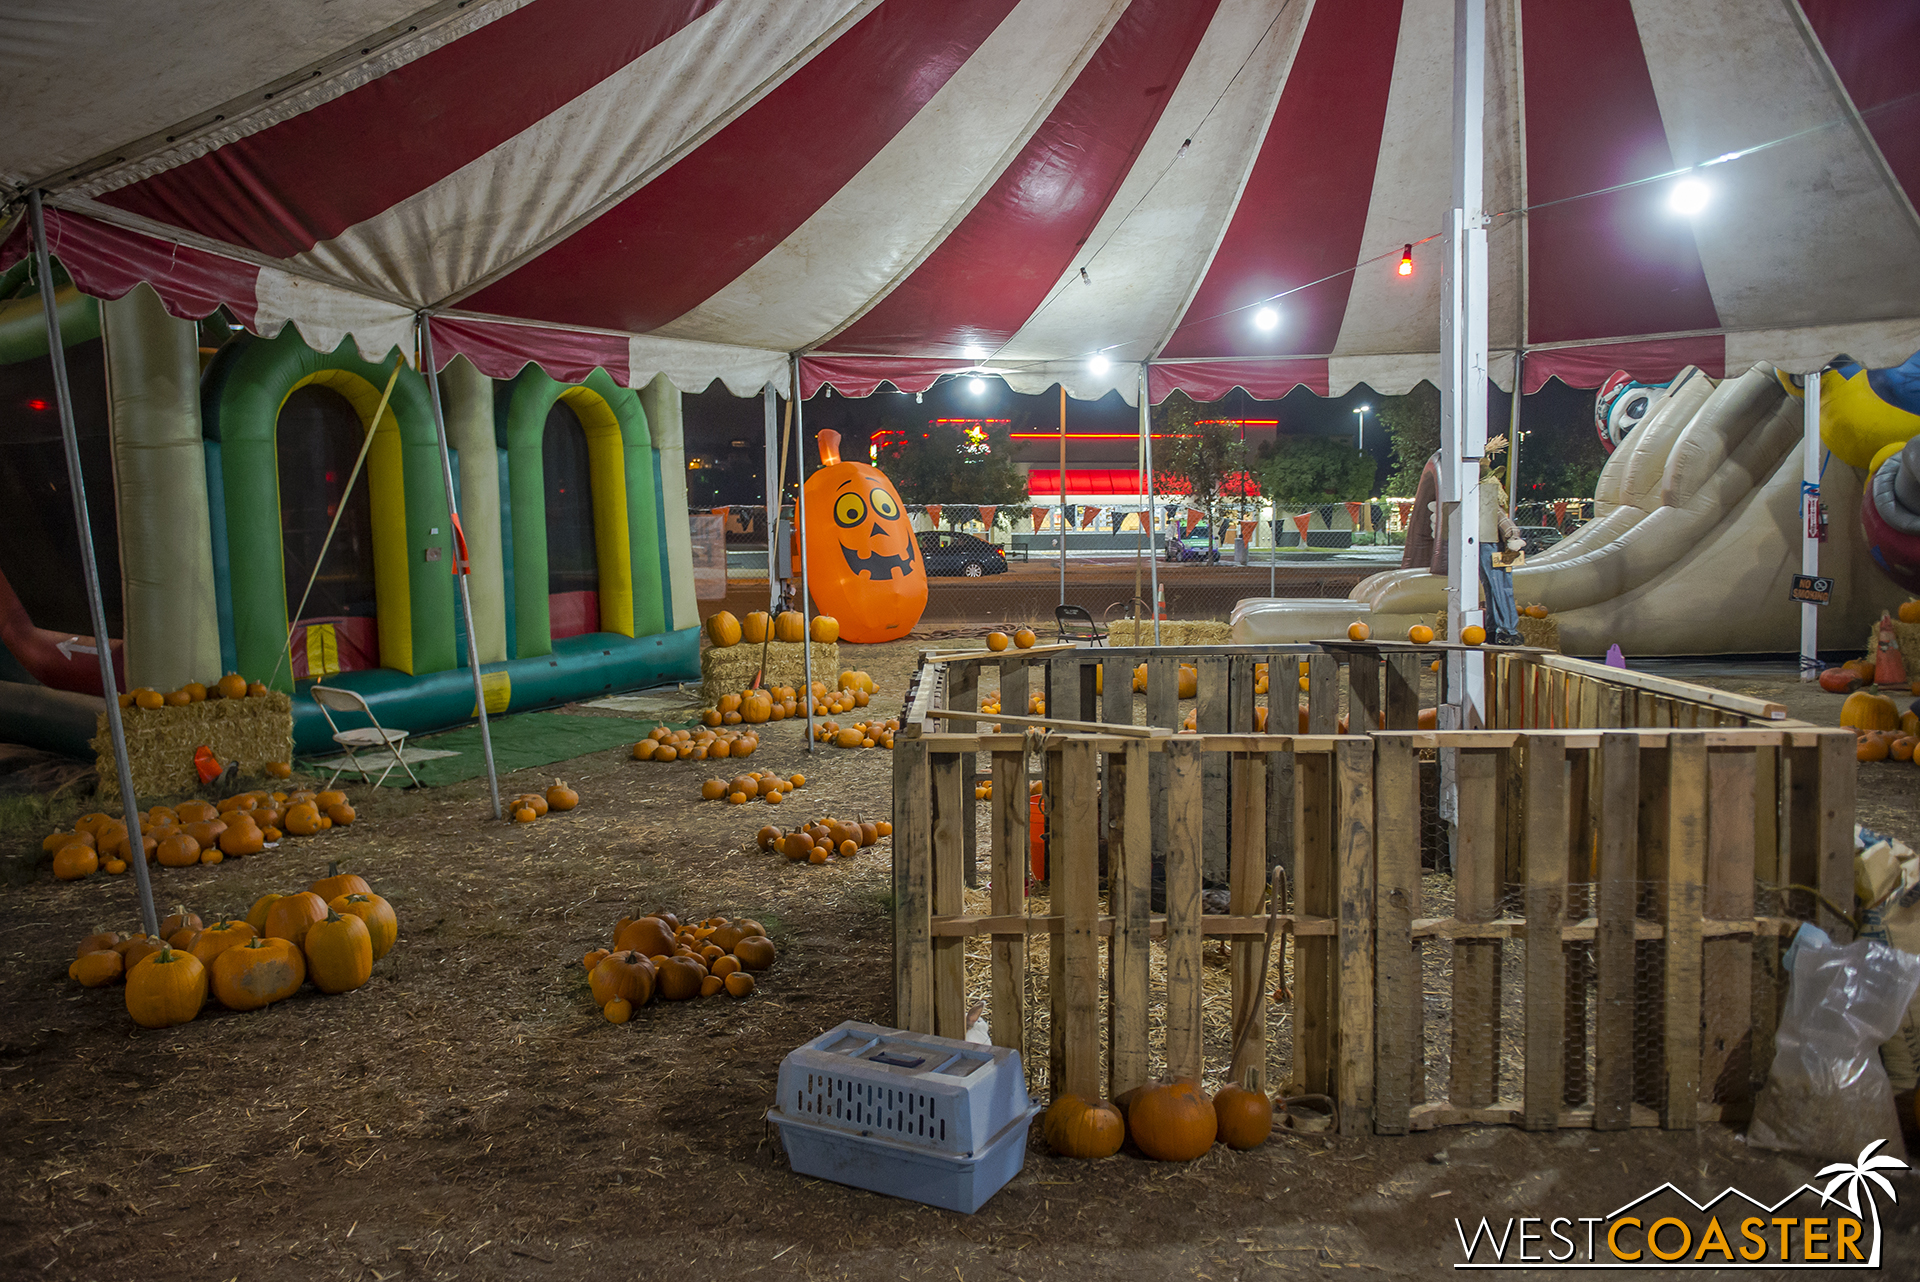 The Fleshyard is formally outfitted under Pumpkin Patch Haunt, and this shows why the name was chosen.